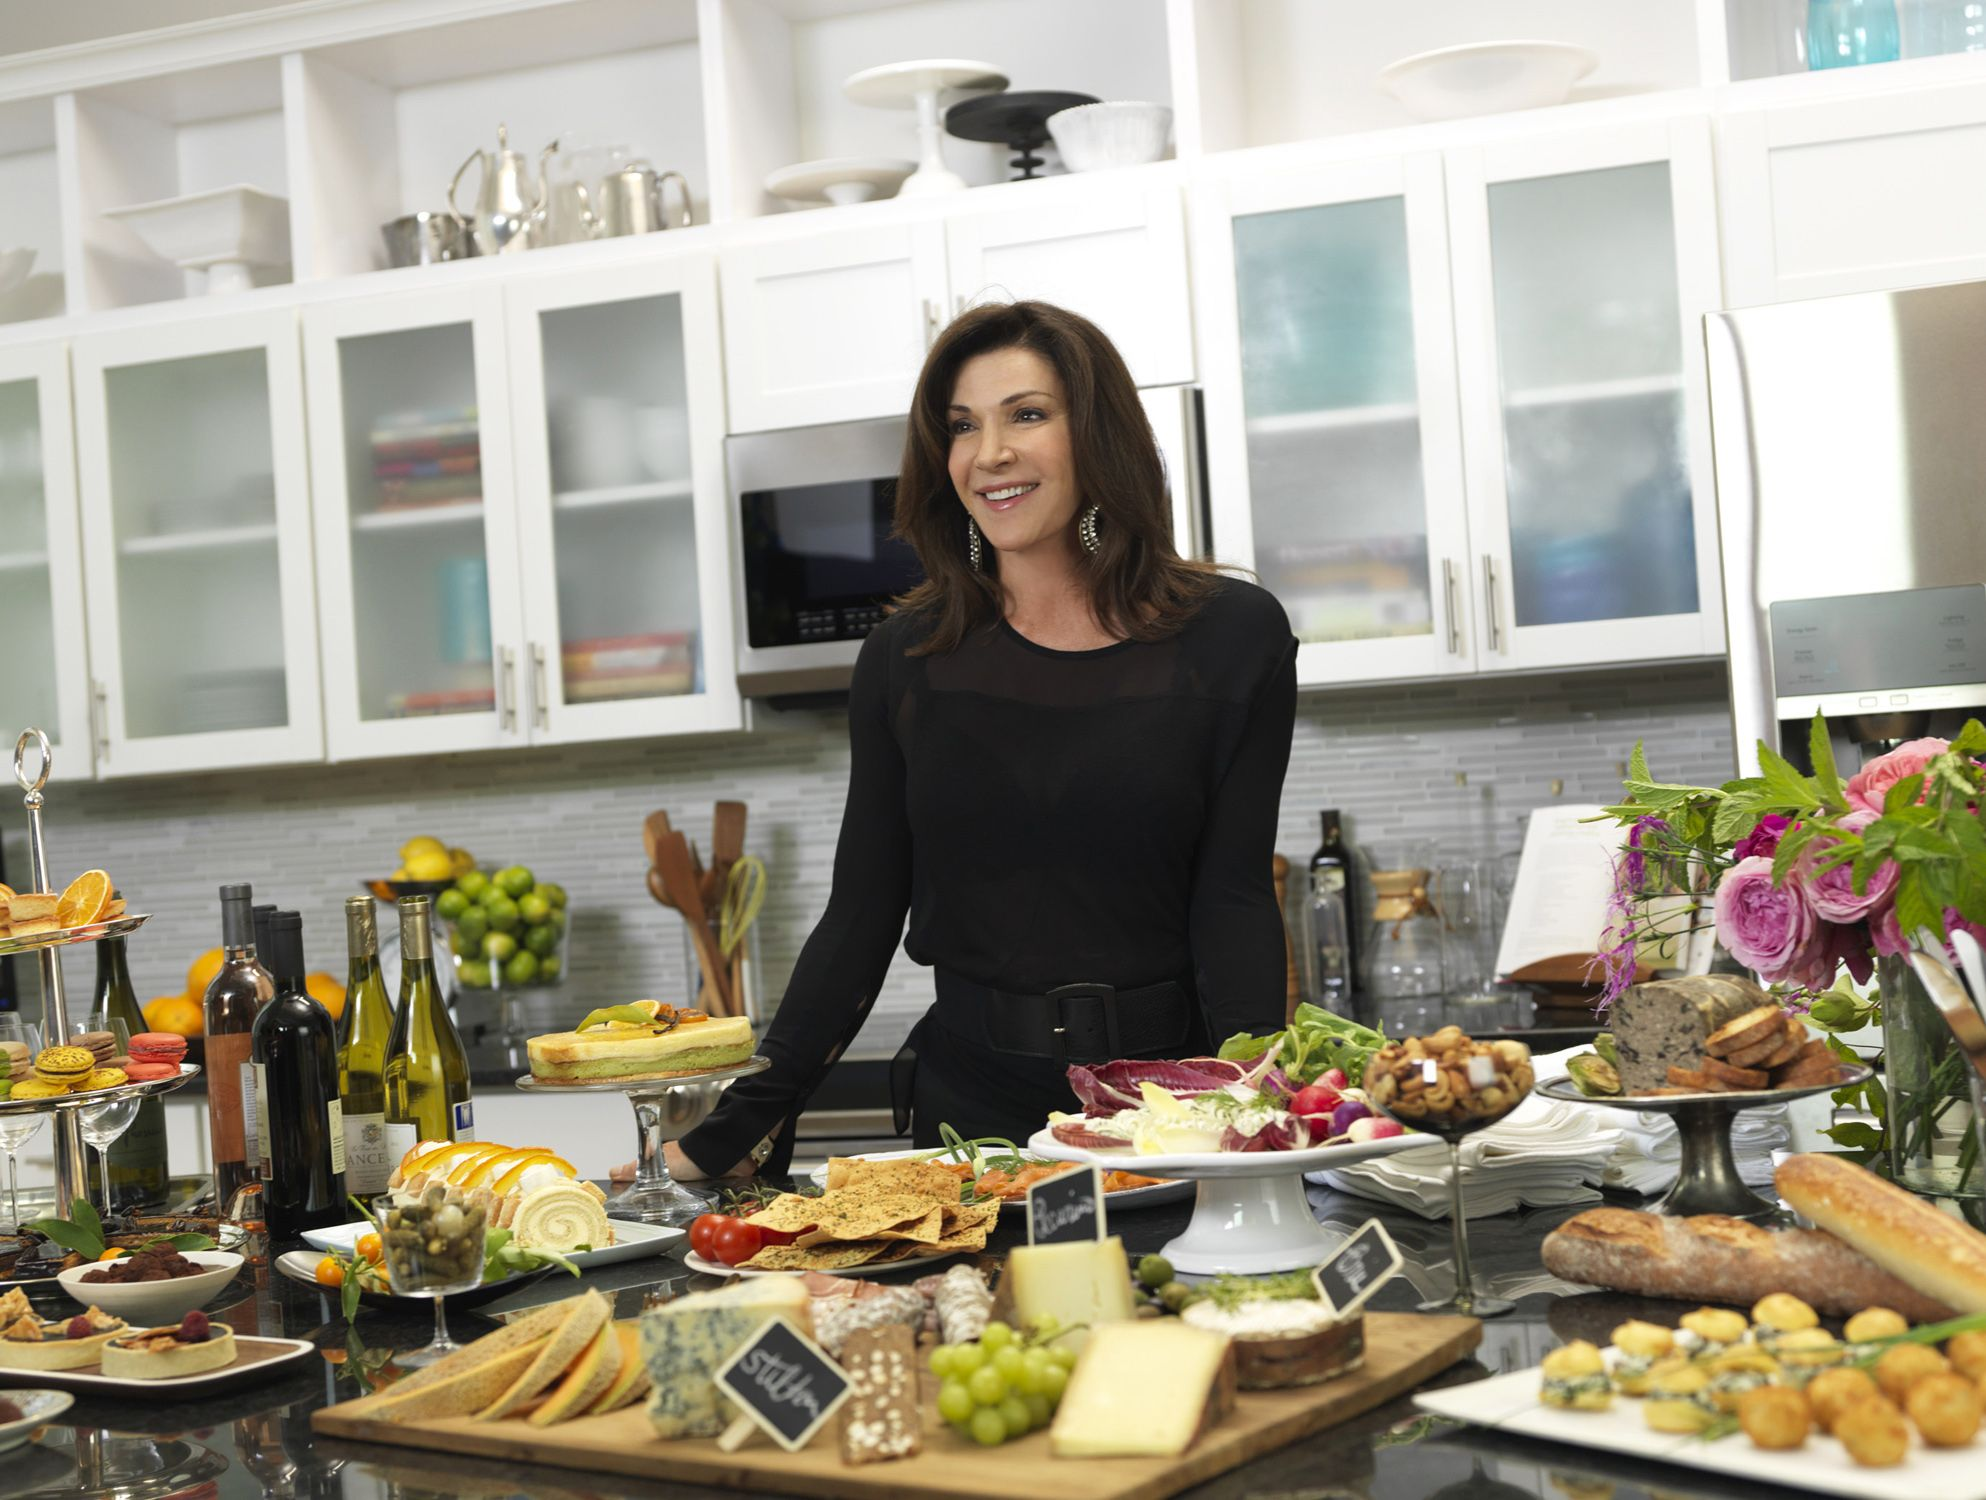 HGTV Star Hilary Farr Gives Advice On How To Host And Design A Kitchen.